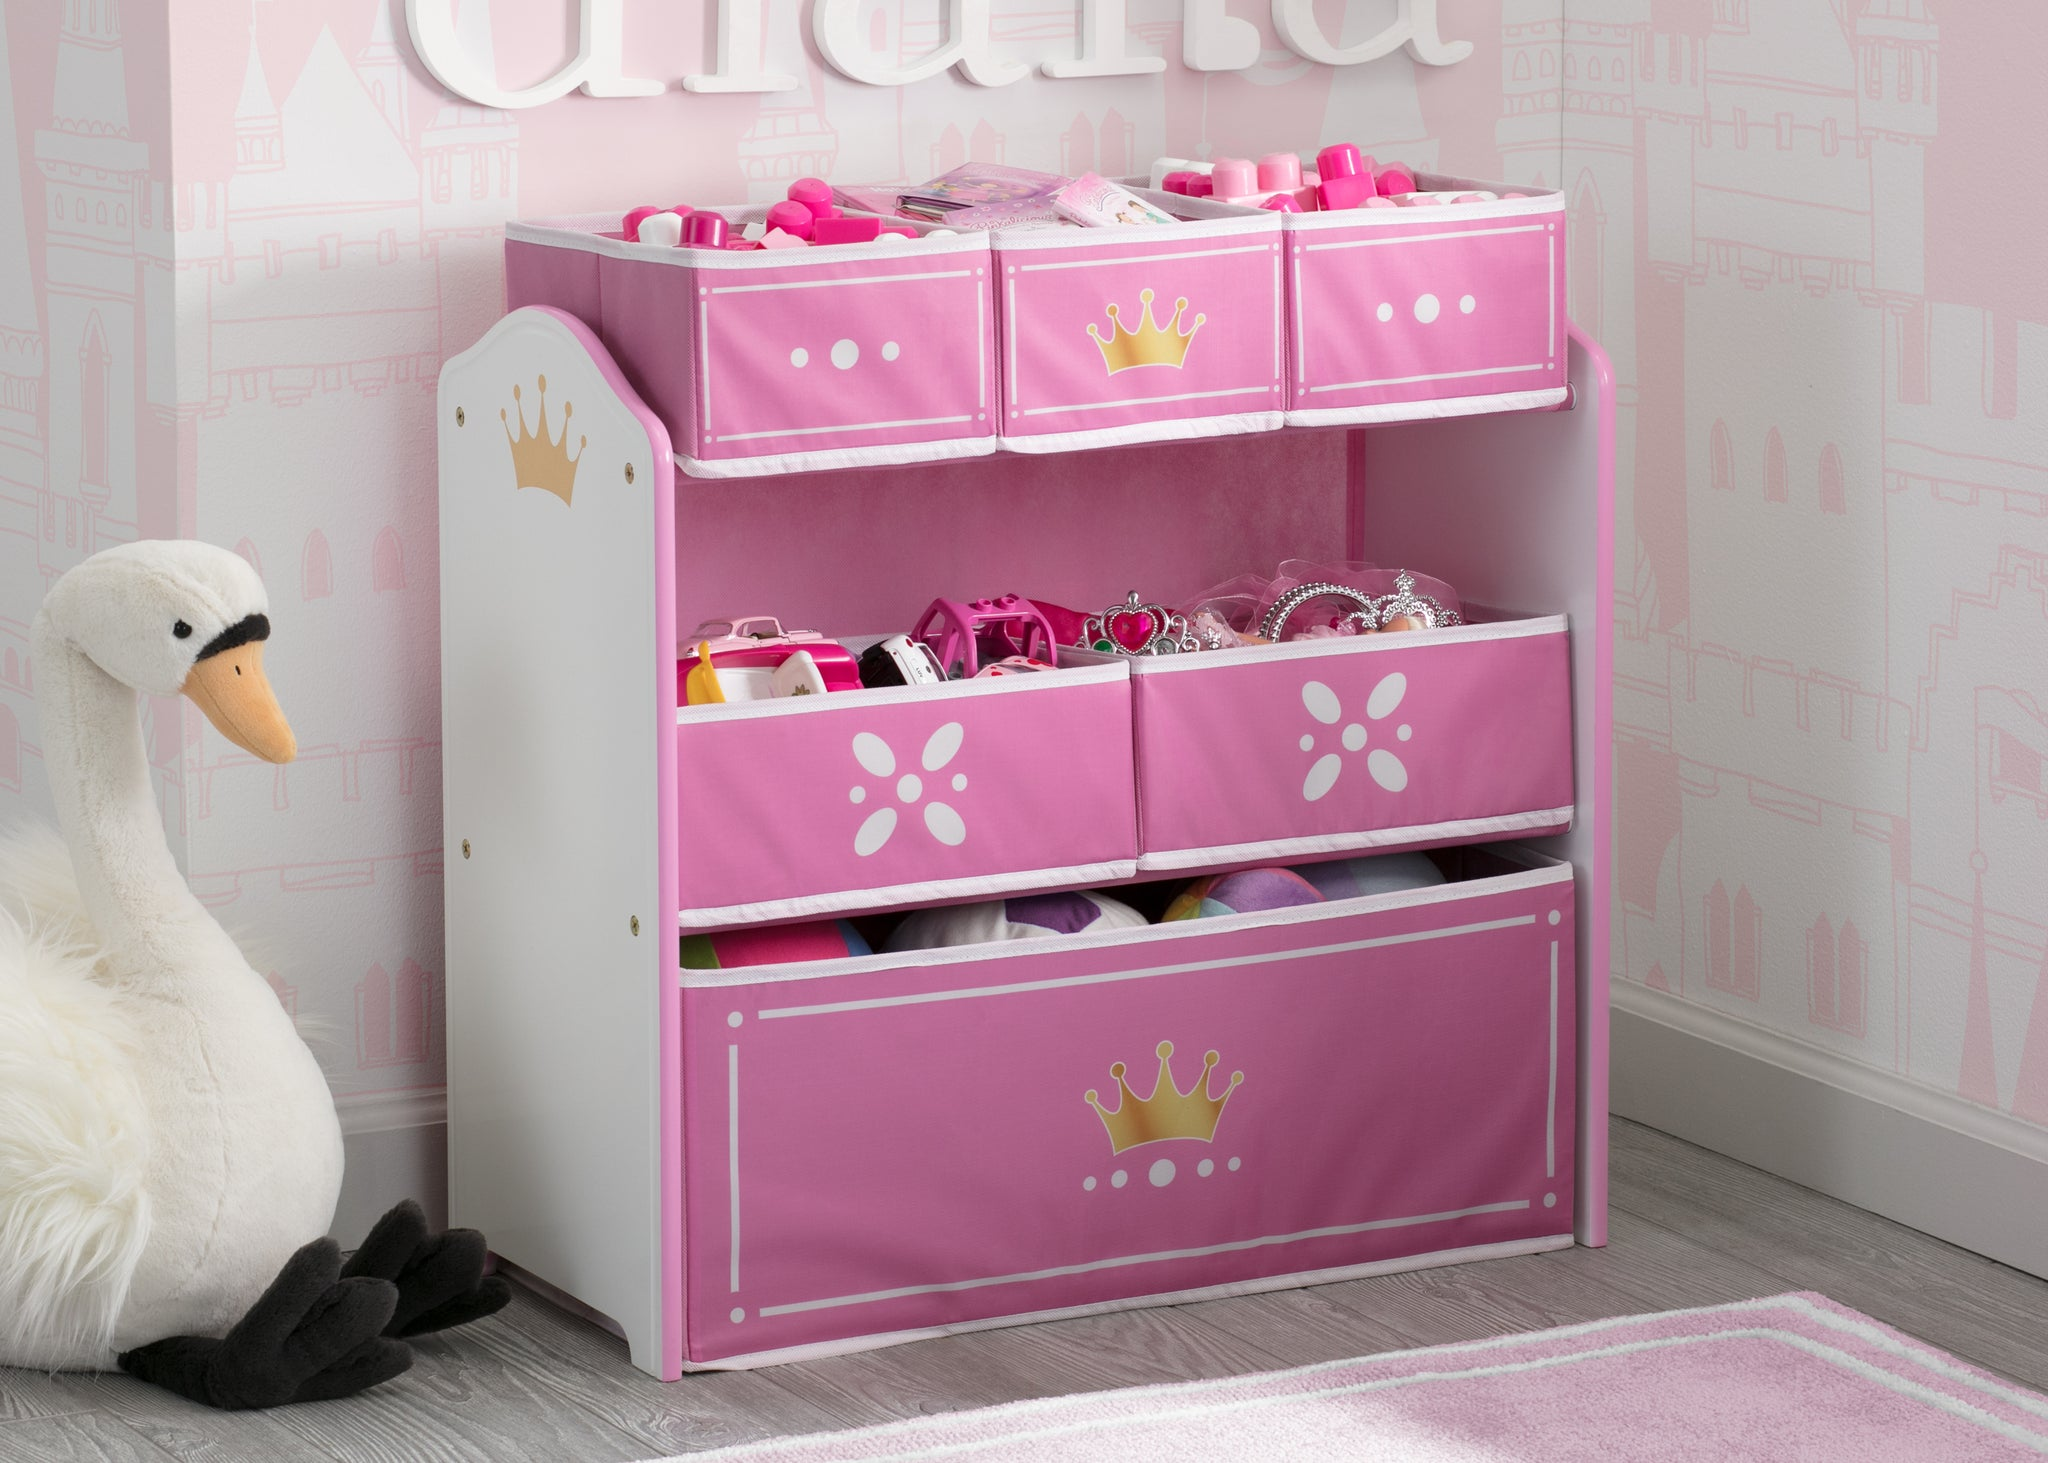 Princess Crown Multi-Bin Toy Organizer, White/Pink